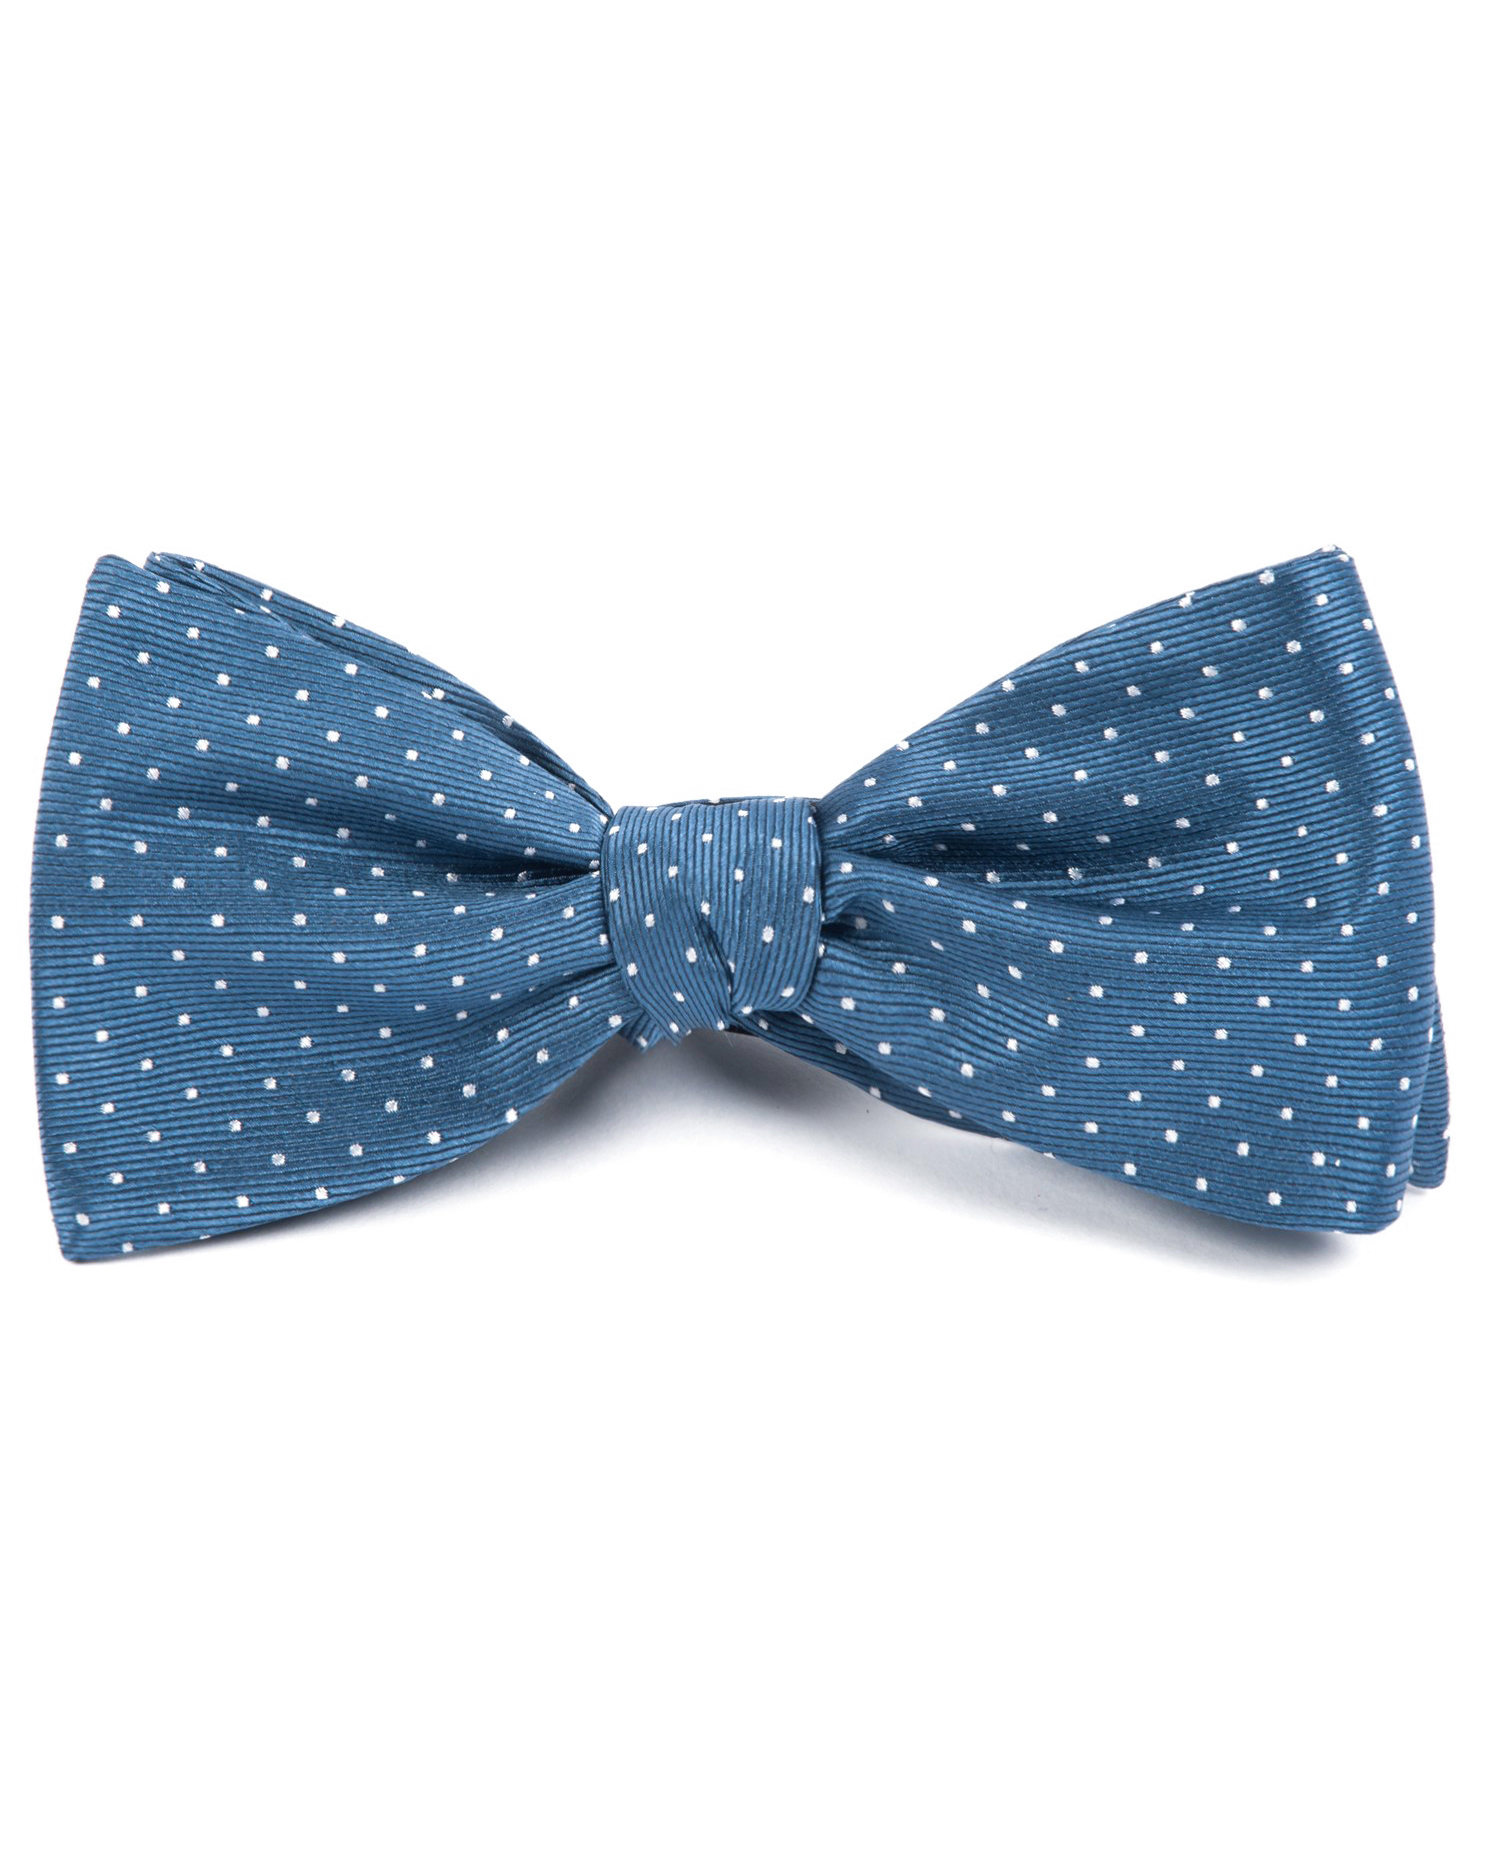 ring bearer blue mini dots bow tie